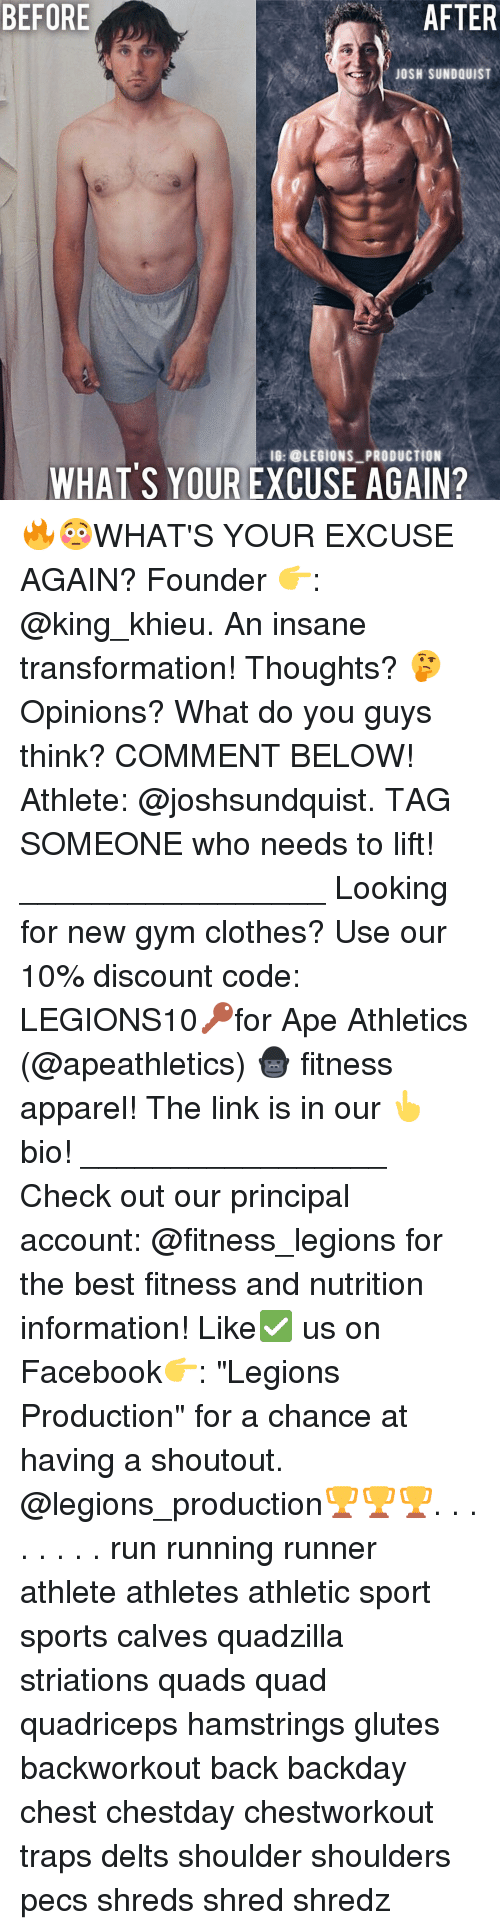 """Clothes, Facebook, and Gym: BEFORE  AFTER  JOSH SUNDOUIST  10: @LESIONS-PRODUCTION  WHATS YOUR EXCUSE AGAIN? 🔥😳WHAT'S YOUR EXCUSE AGAIN? Founder 👉: @king_khieu. An insane transformation! Thoughts? 🤔Opinions? What do you guys think? COMMENT BELOW! Athlete: @joshsundquist. TAG SOMEONE who needs to lift! _________________ Looking for new gym clothes? Use our 10% discount code: LEGIONS10🔑for Ape Athletics (@apeathletics) 🦍 fitness apparel! The link is in our 👆 bio! _________________ Check out our principal account: @fitness_legions for the best fitness and nutrition information! Like✅ us on Facebook👉: """"Legions Production"""" for a chance at having a shoutout. @legions_production🏆🏆🏆. . . . . . . . run running runner athlete athletes athletic sport sports calves quadzilla striations quads quad quadriceps hamstrings glutes backworkout back backday chest chestday chestworkout traps delts shoulder shoulders pecs shreds shred shredz"""